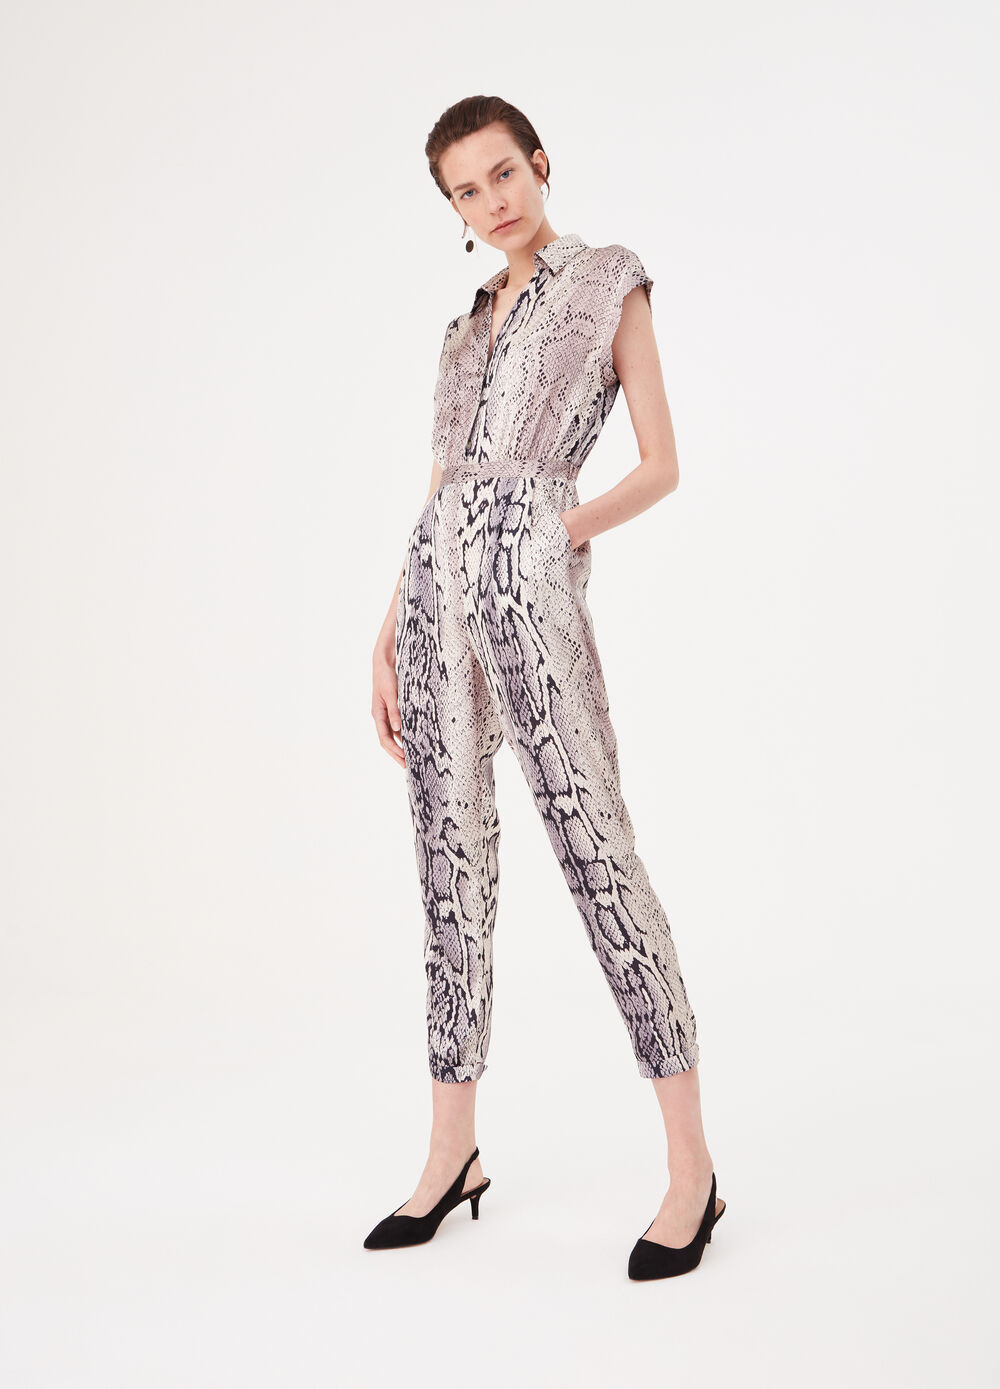 Satin-effect jumpsuit with animal print